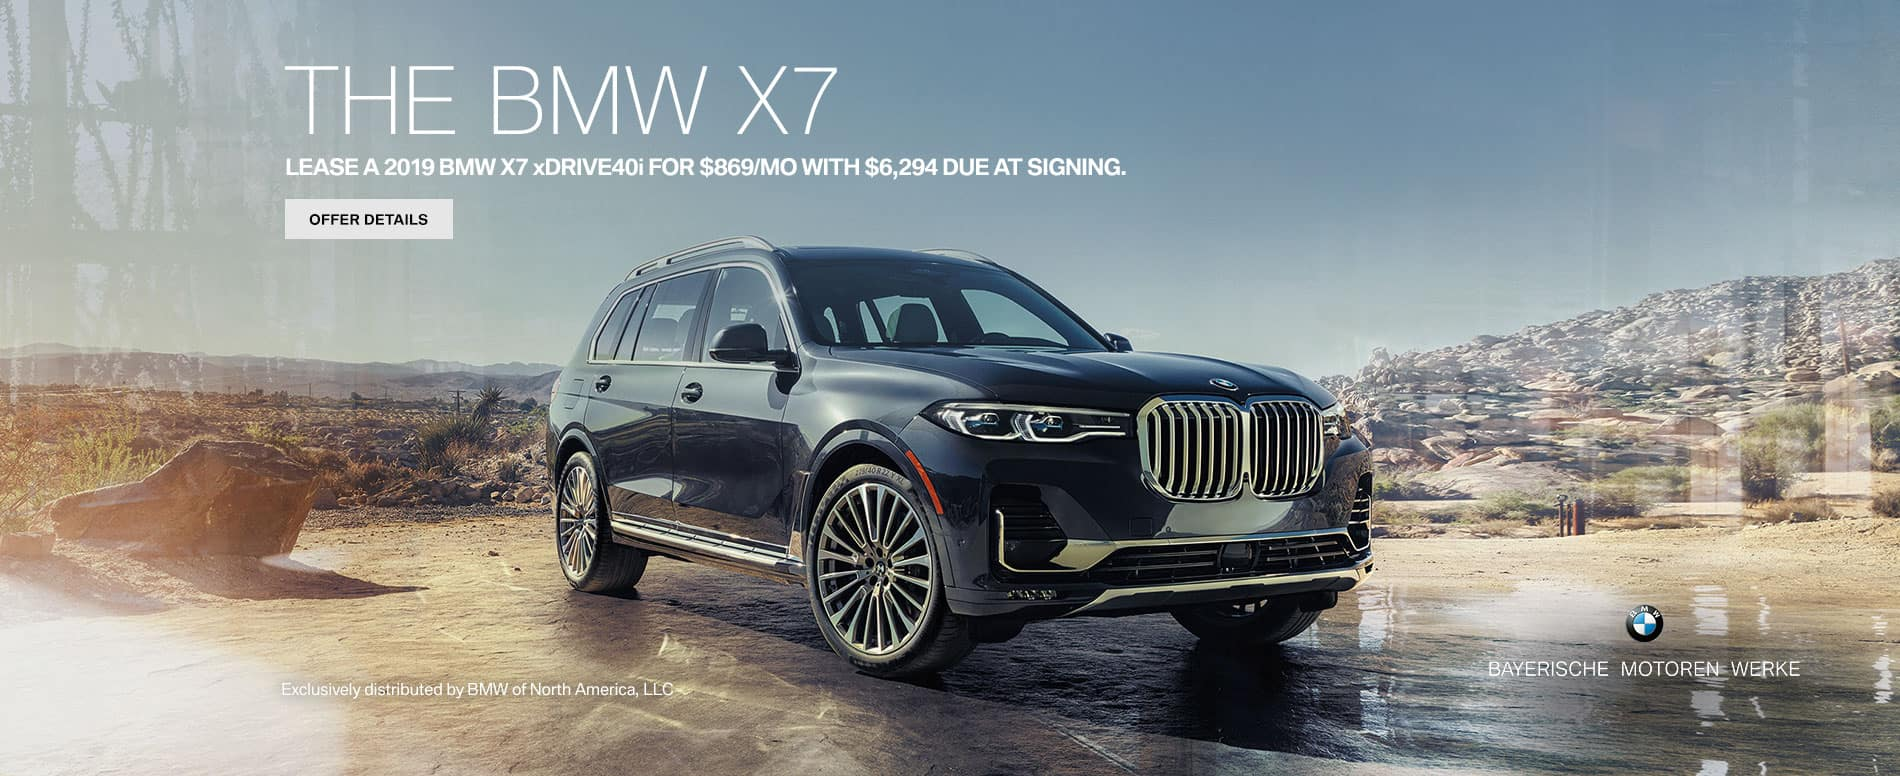 FMA5_DEC_PUSH_2019_BMW_X7_869